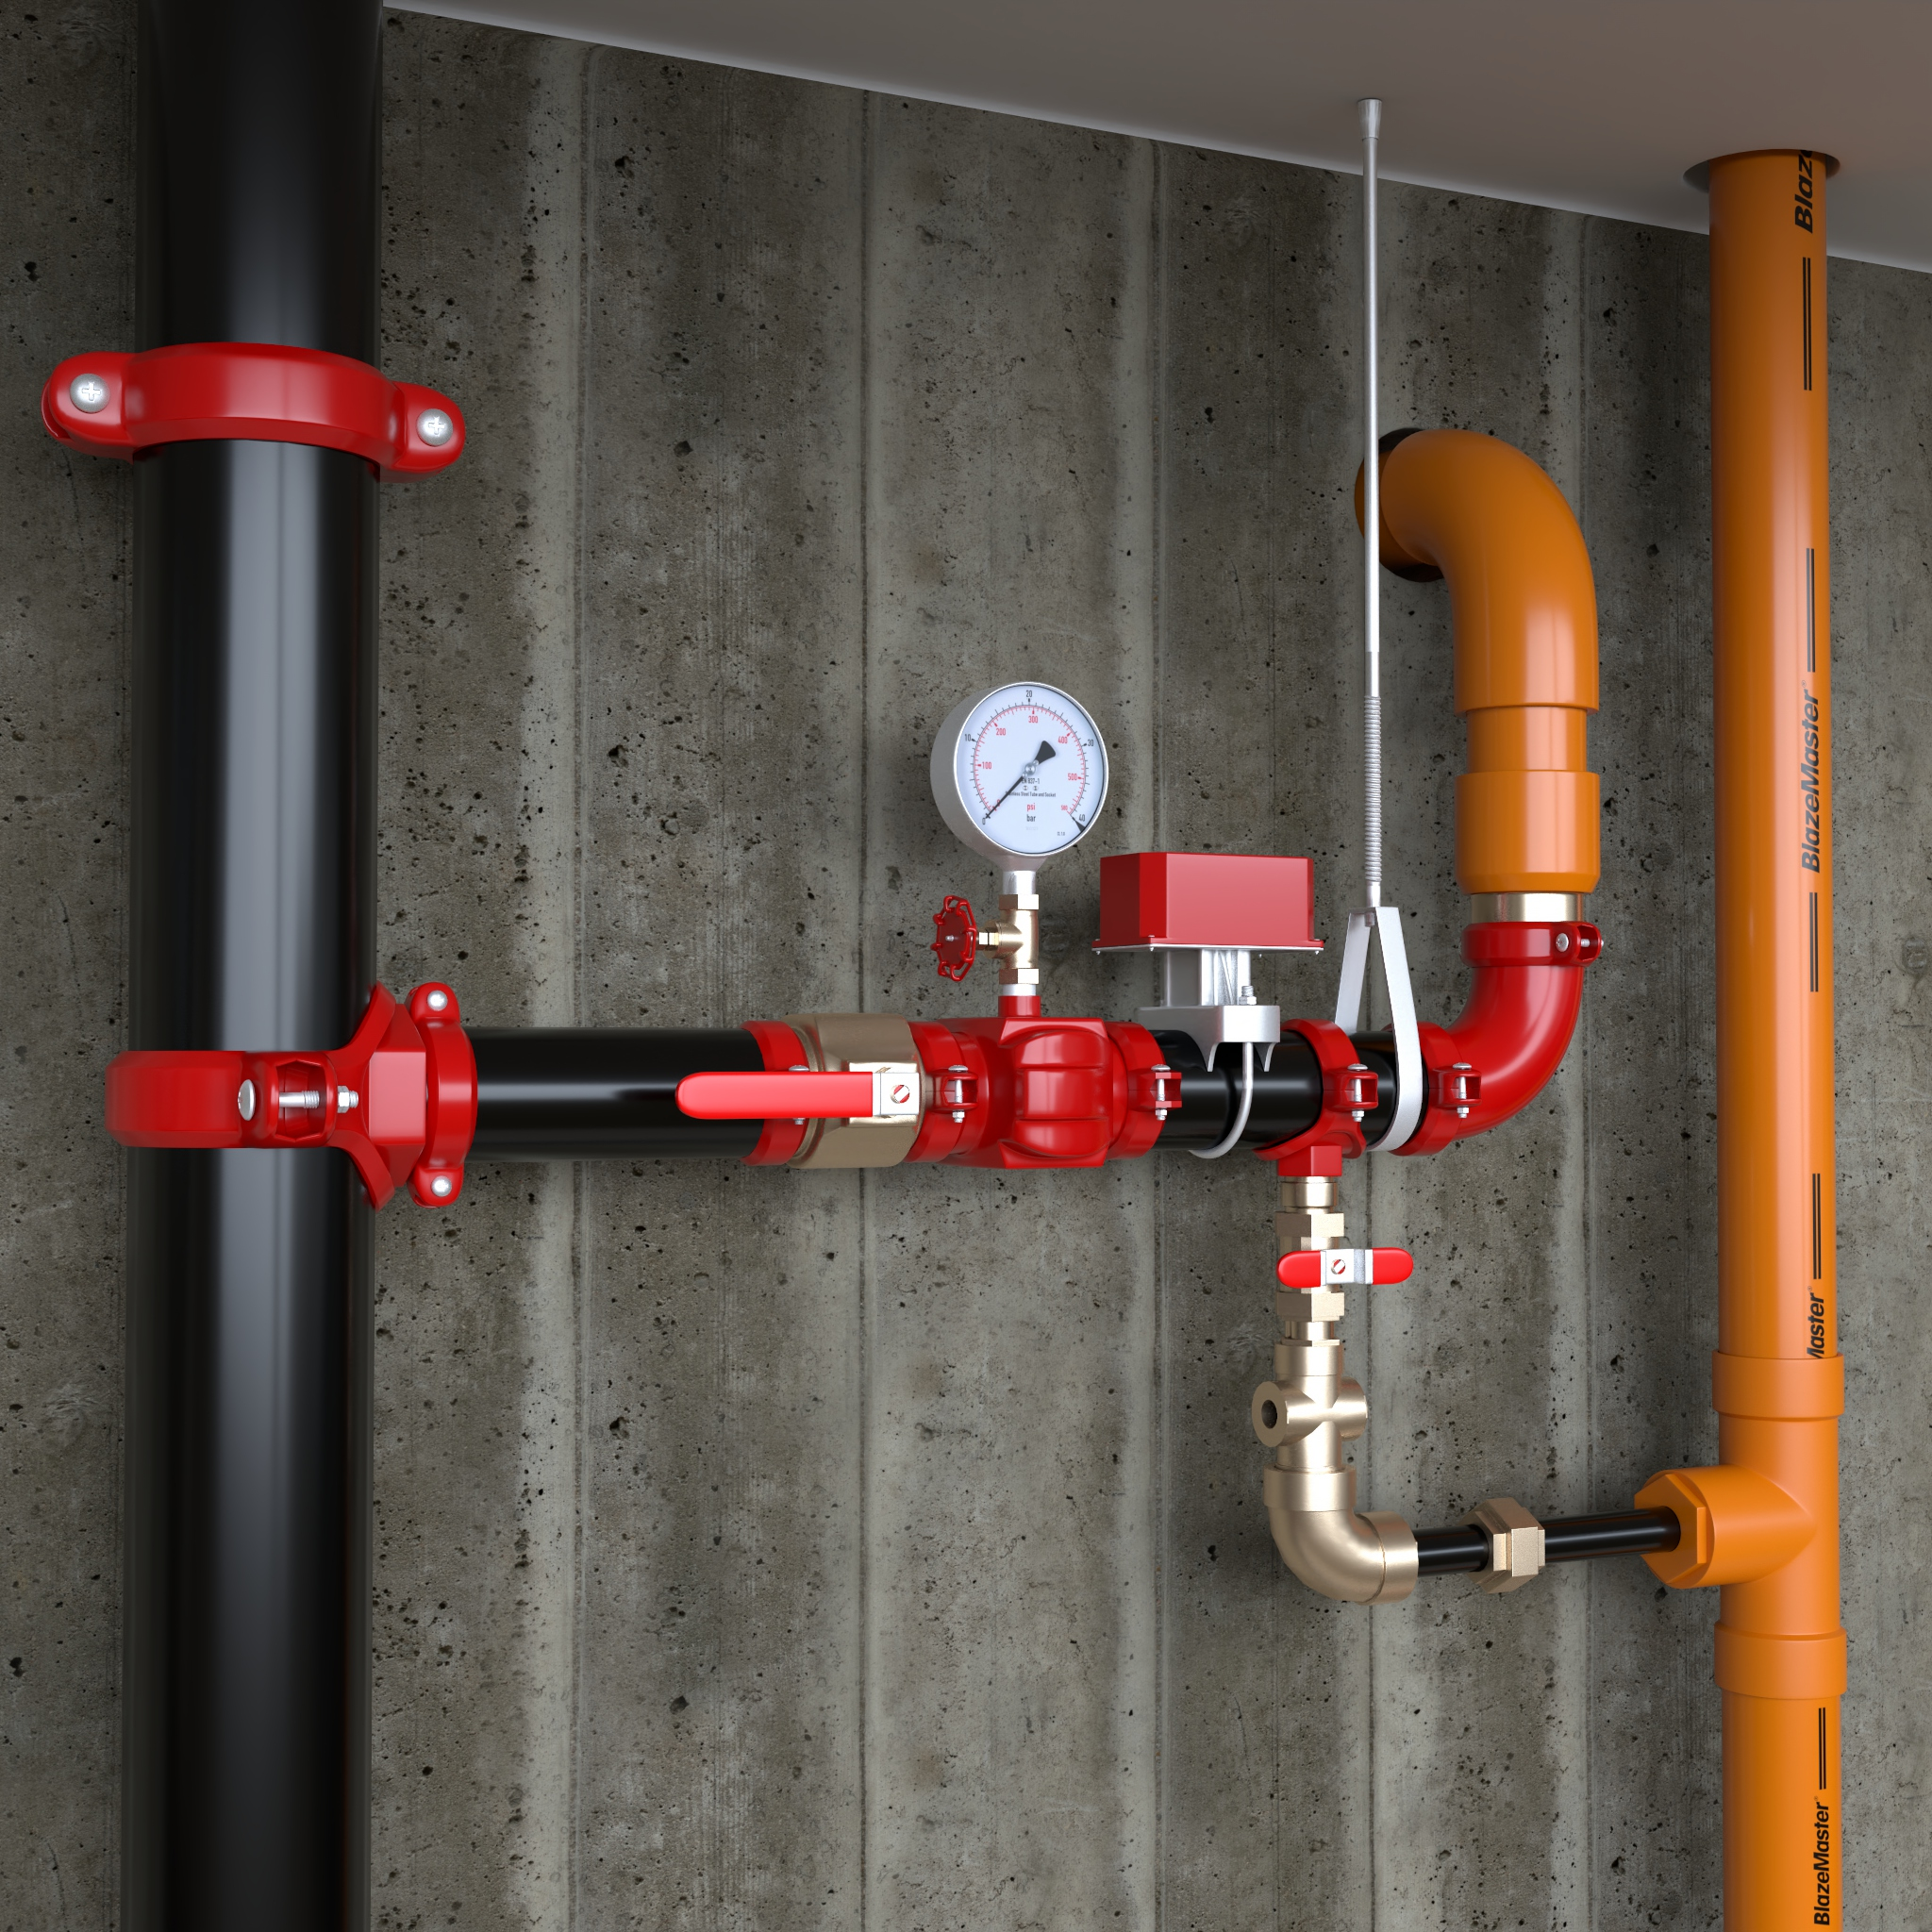 BlazeMaster® CPVC: The Right Choice for Drain Pipes